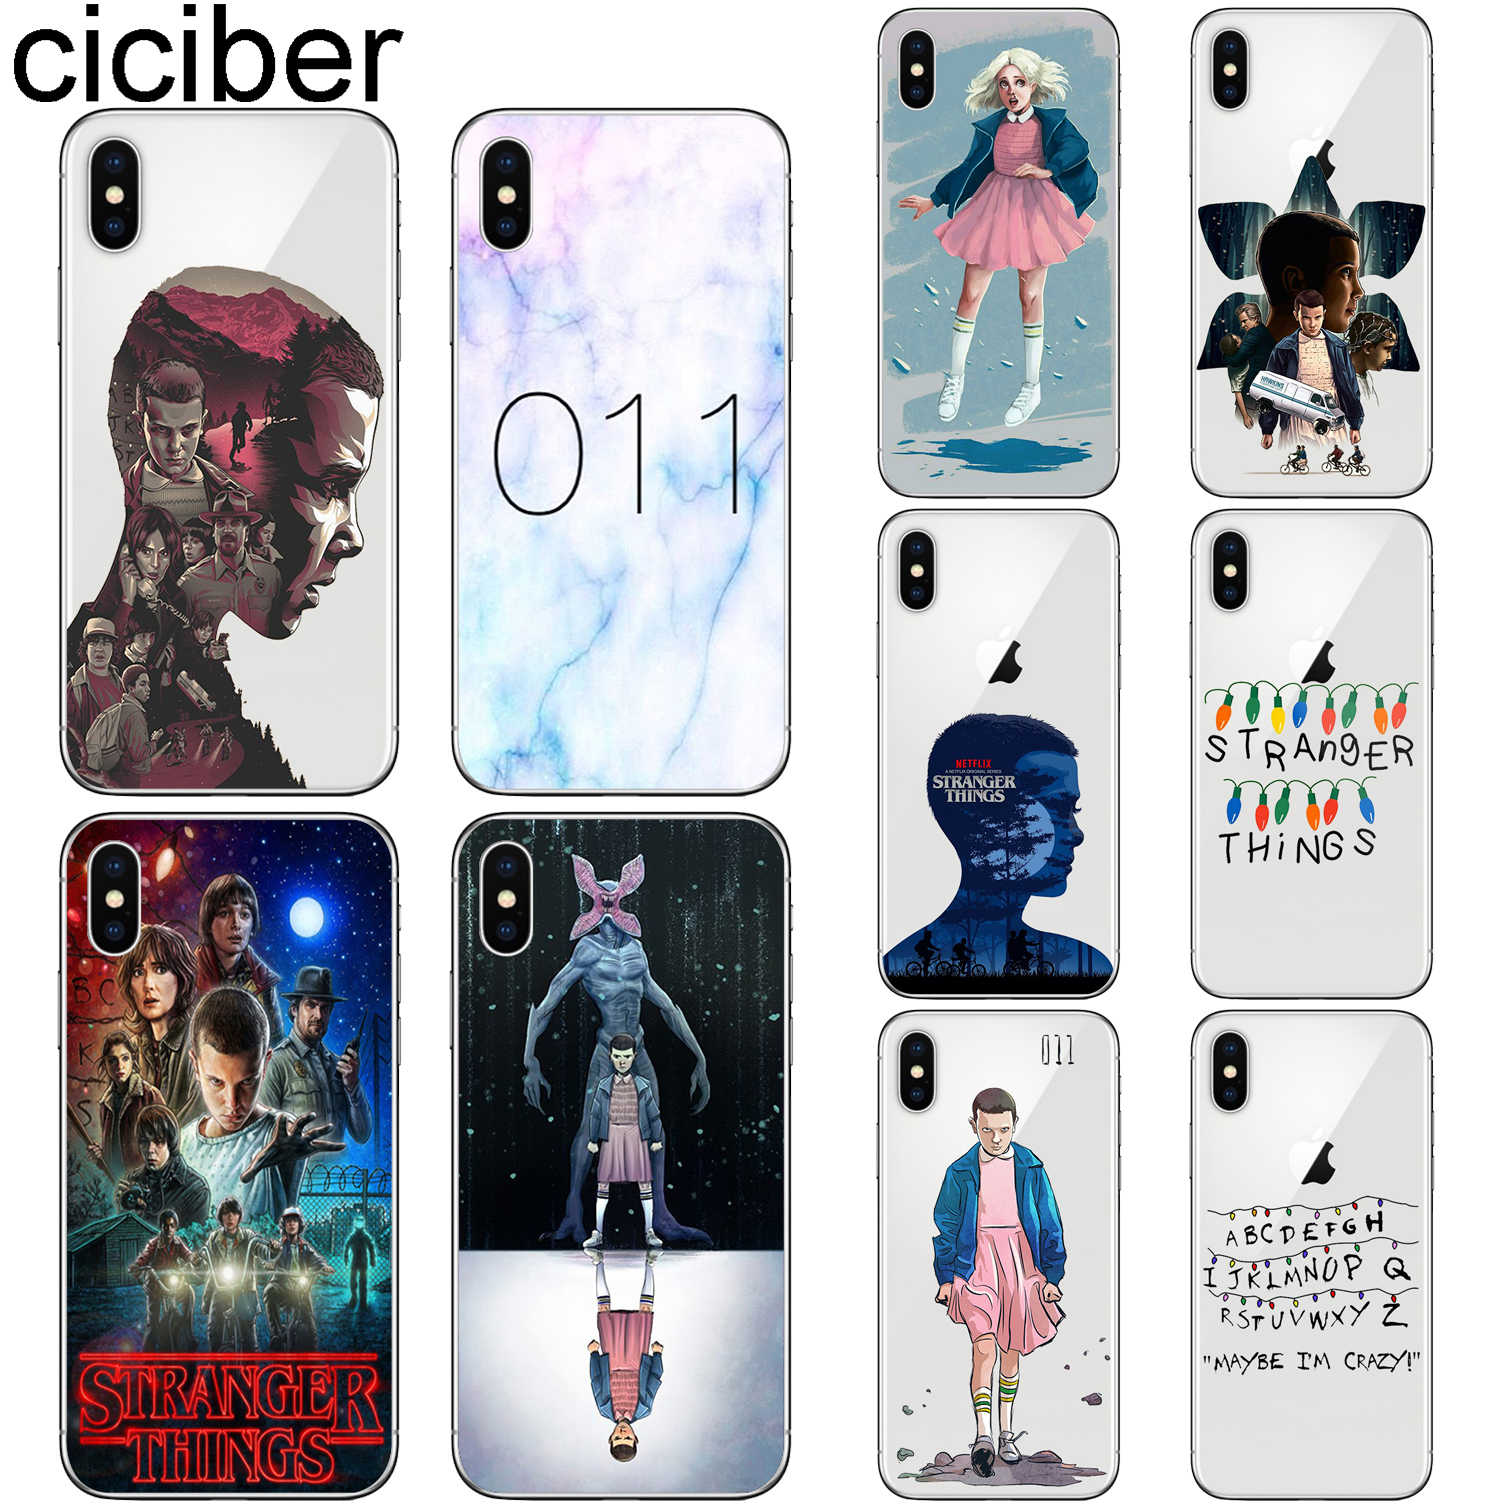 ciciber Stranger Things Cover Funda for Iphone 7 8 6 6S Plus 5S SE 11 Pro Max Soft TPU Phone Case for Iphone X XS MAX XR Coque